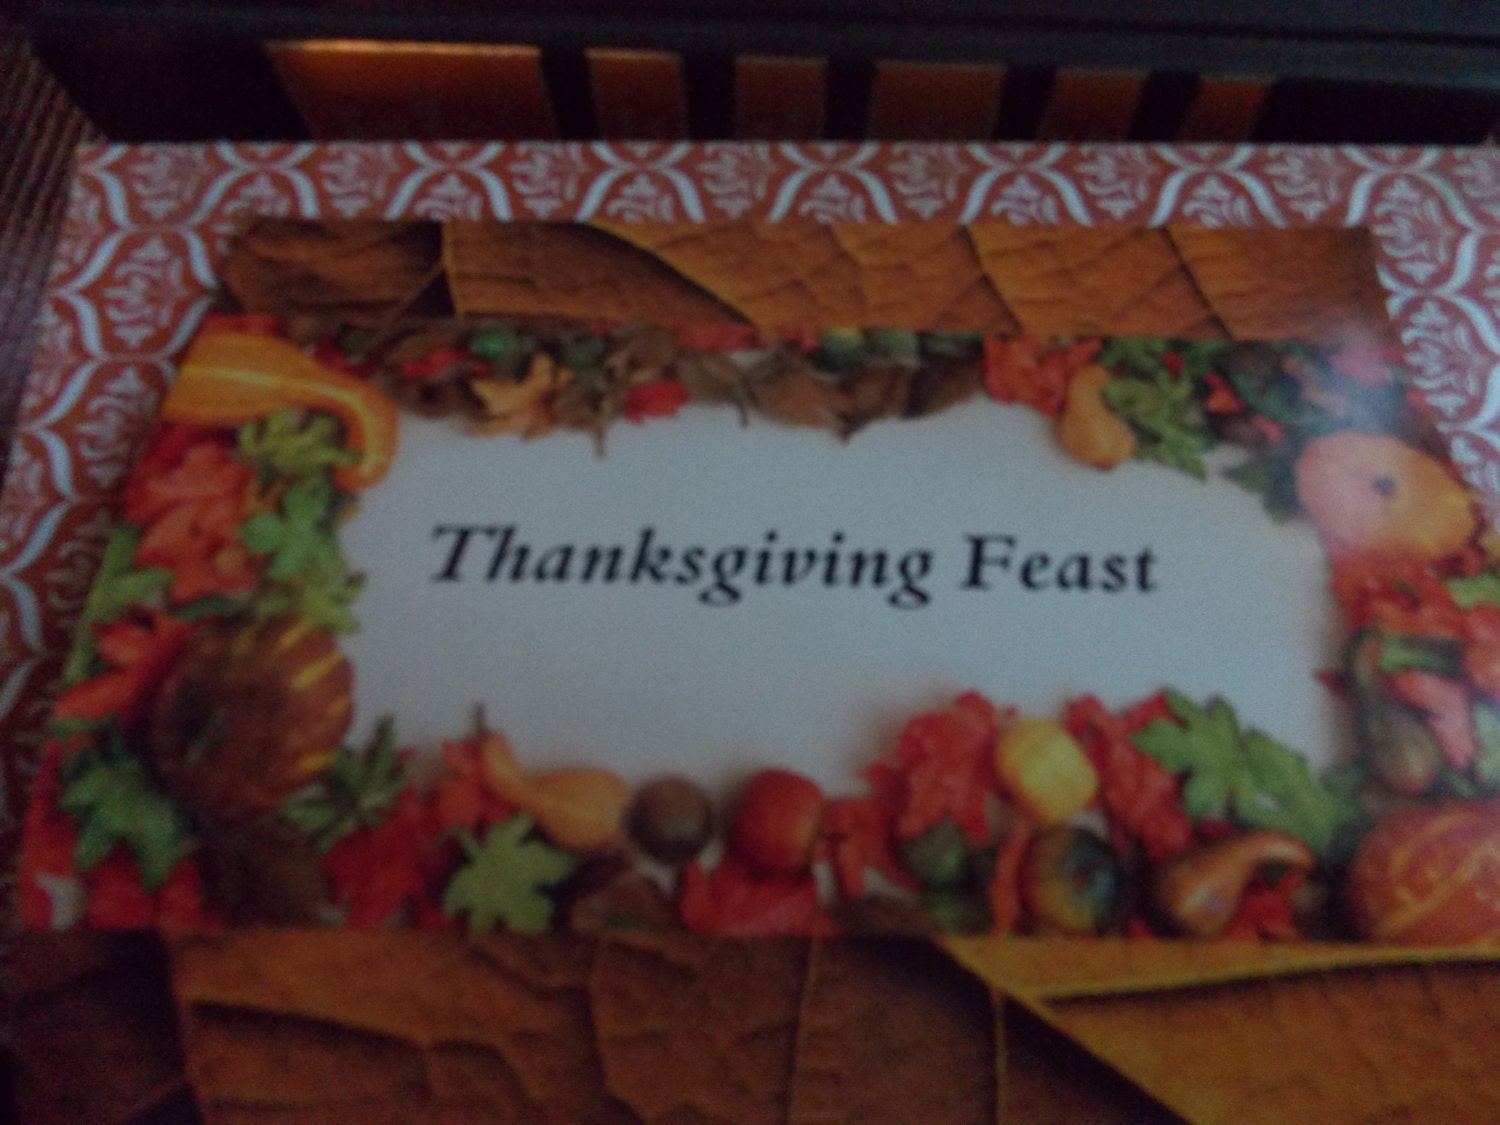 Thanksgiving Feast candy bar wrappers kit ( Candy not included) - BlueSkyeJunction